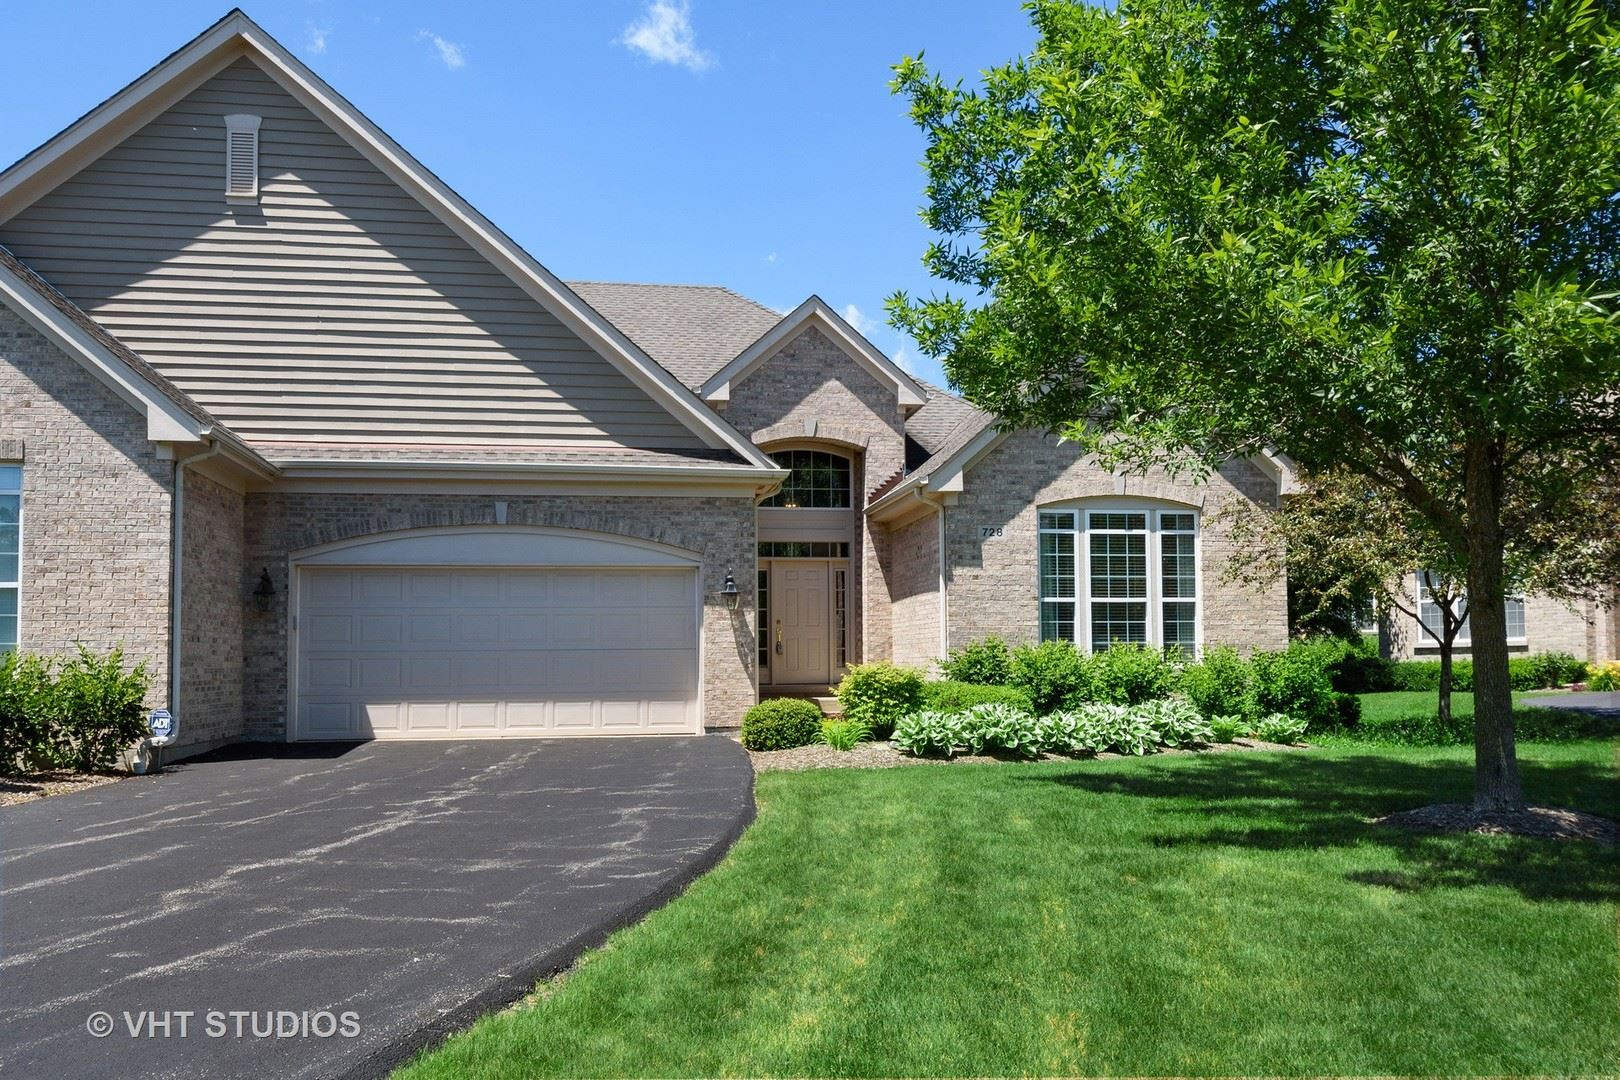 Photo for 728 Stone Canyon Circle, Inverness, IL 60010 (MLS # 10828442)